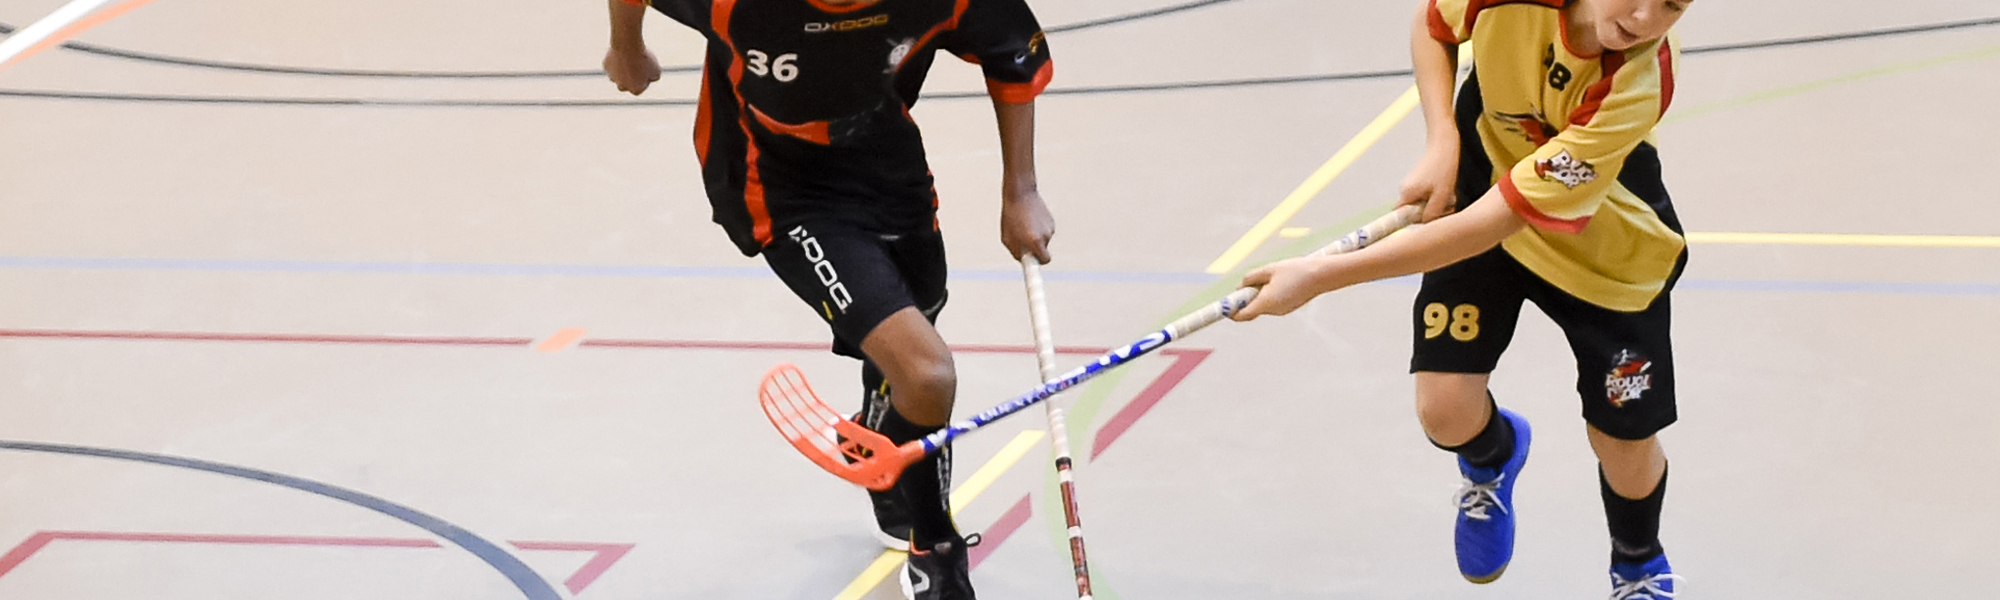 rouge et or le locle, club de unihockey